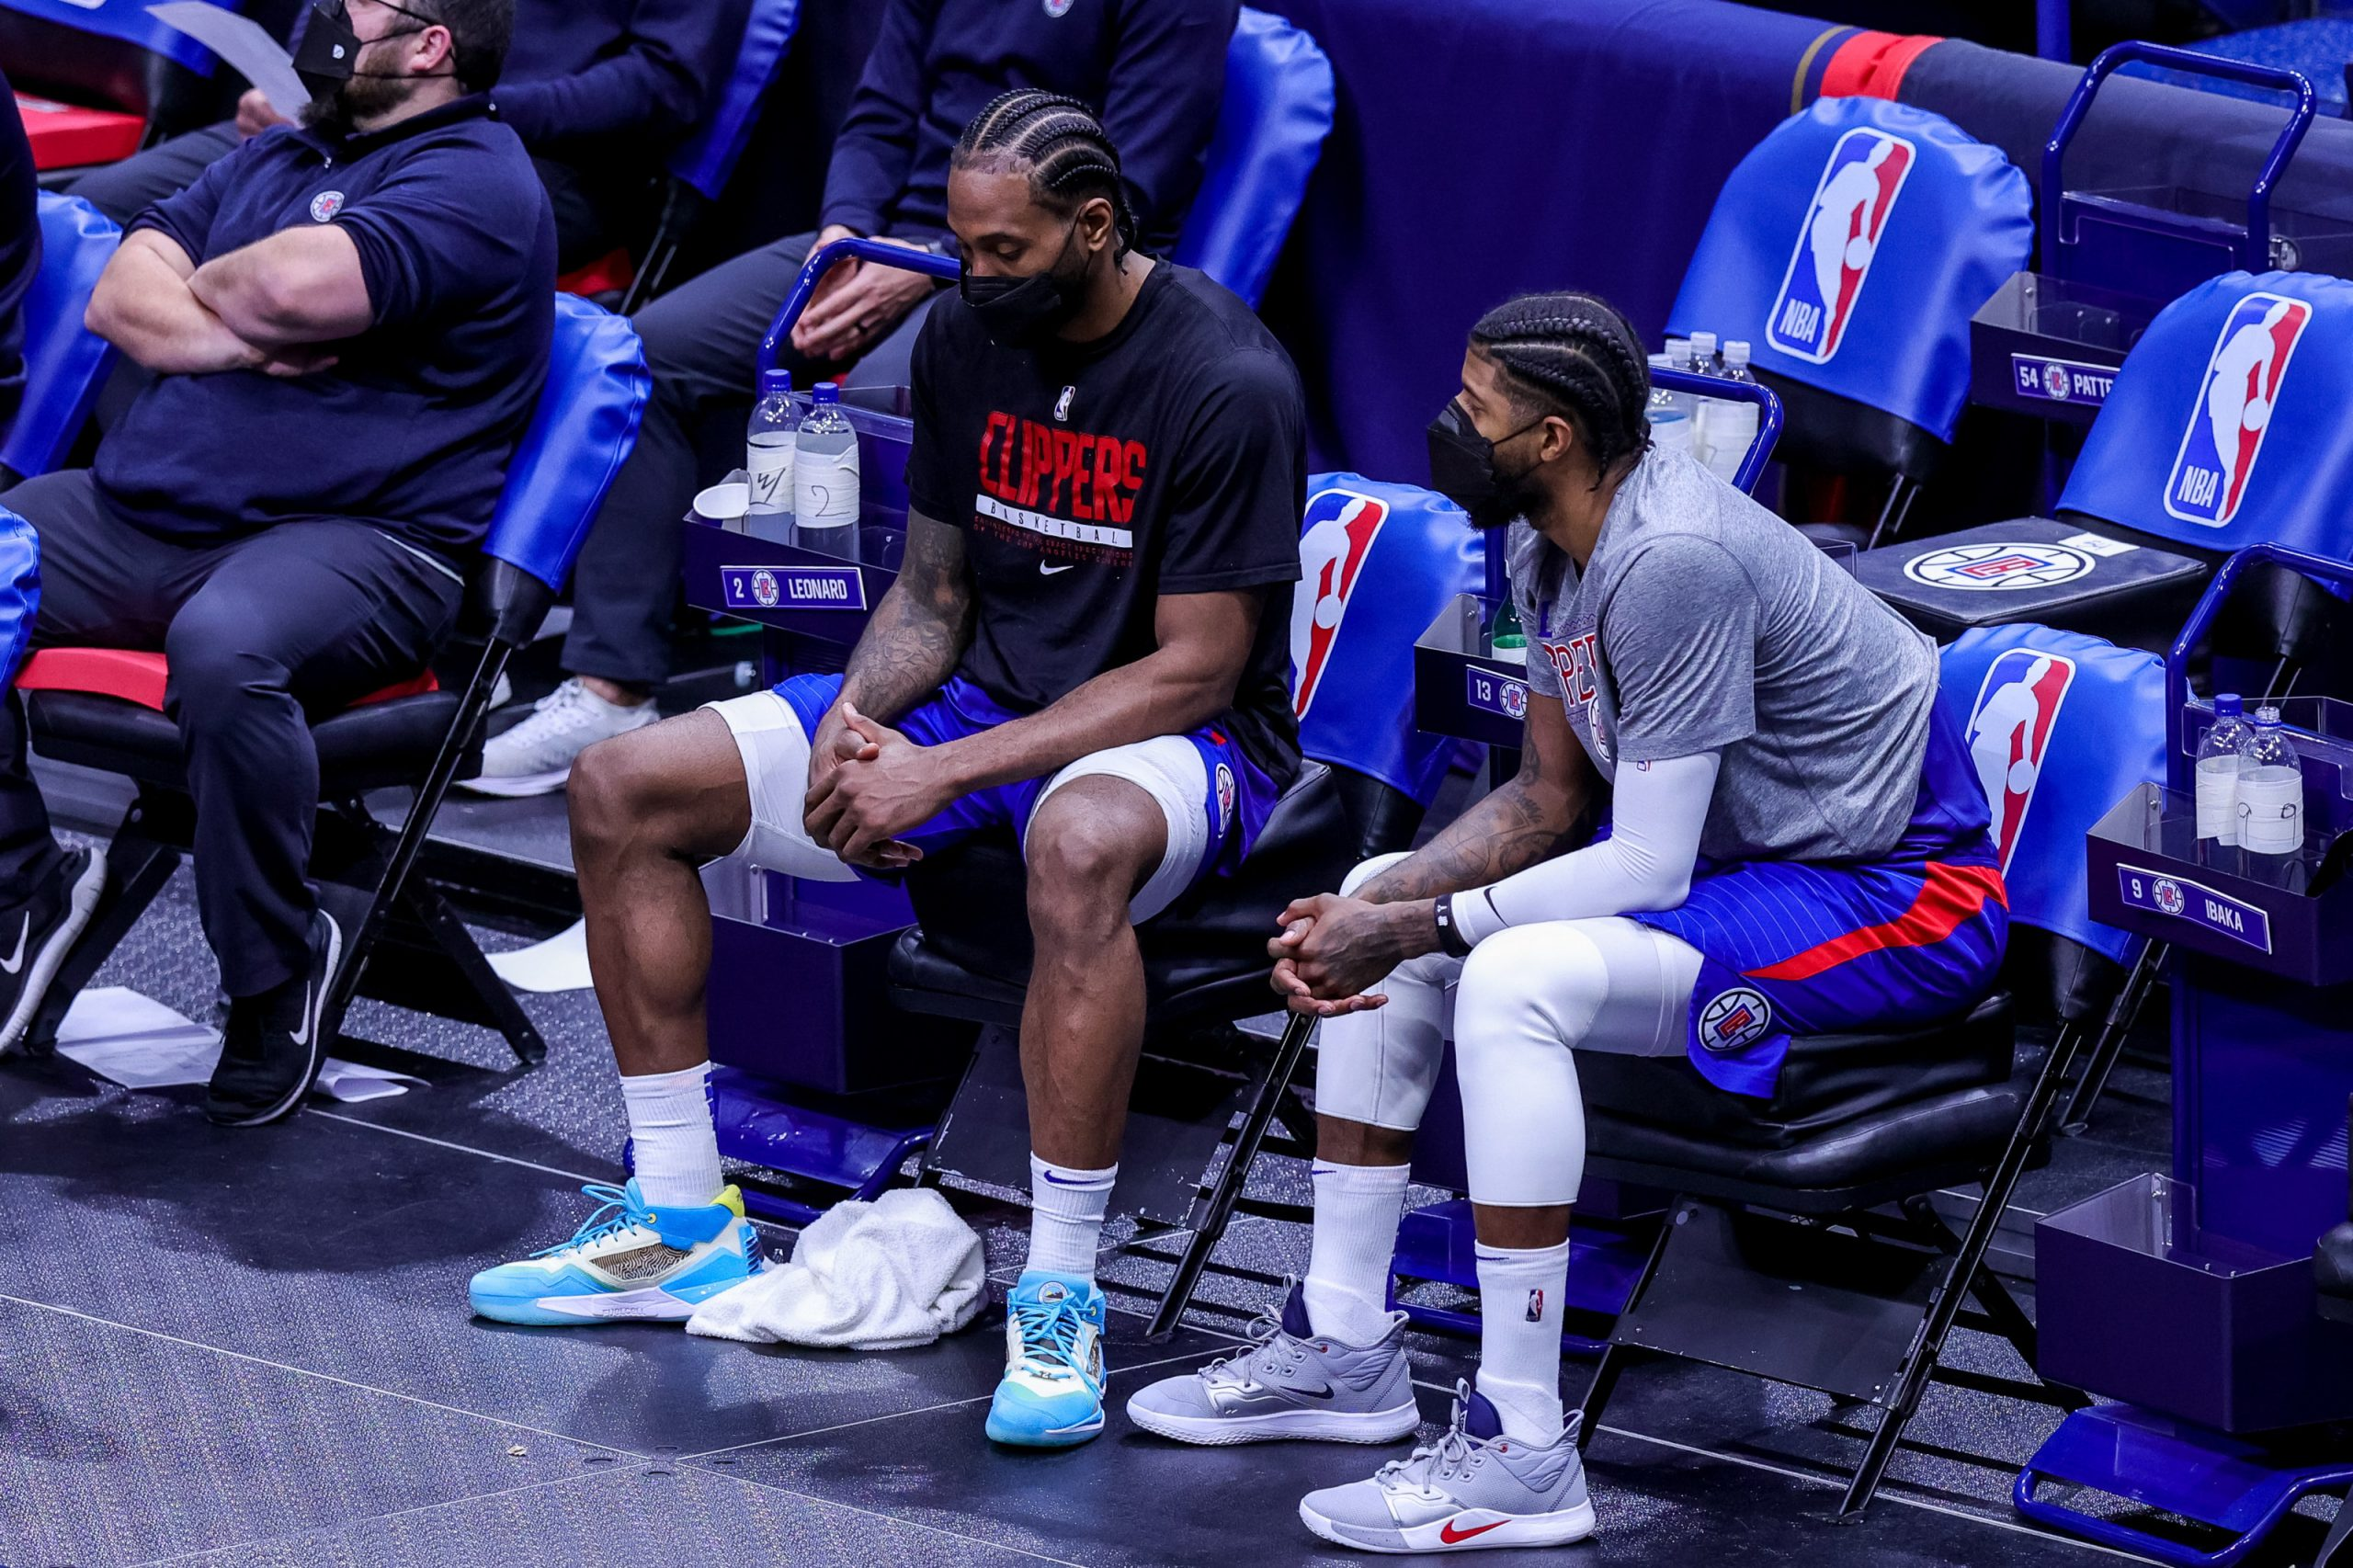 Mar 14, 2021; New Orleans, Louisiana, USA;  LA Clippers guard Paul George (13) and forward Kawhi Leonard (2) react to a play from the bench against New Orleans Pelicans during the second half at the Smoothie King Center. Mandatory Credit: Stephen Lew-USA TODAY Sports